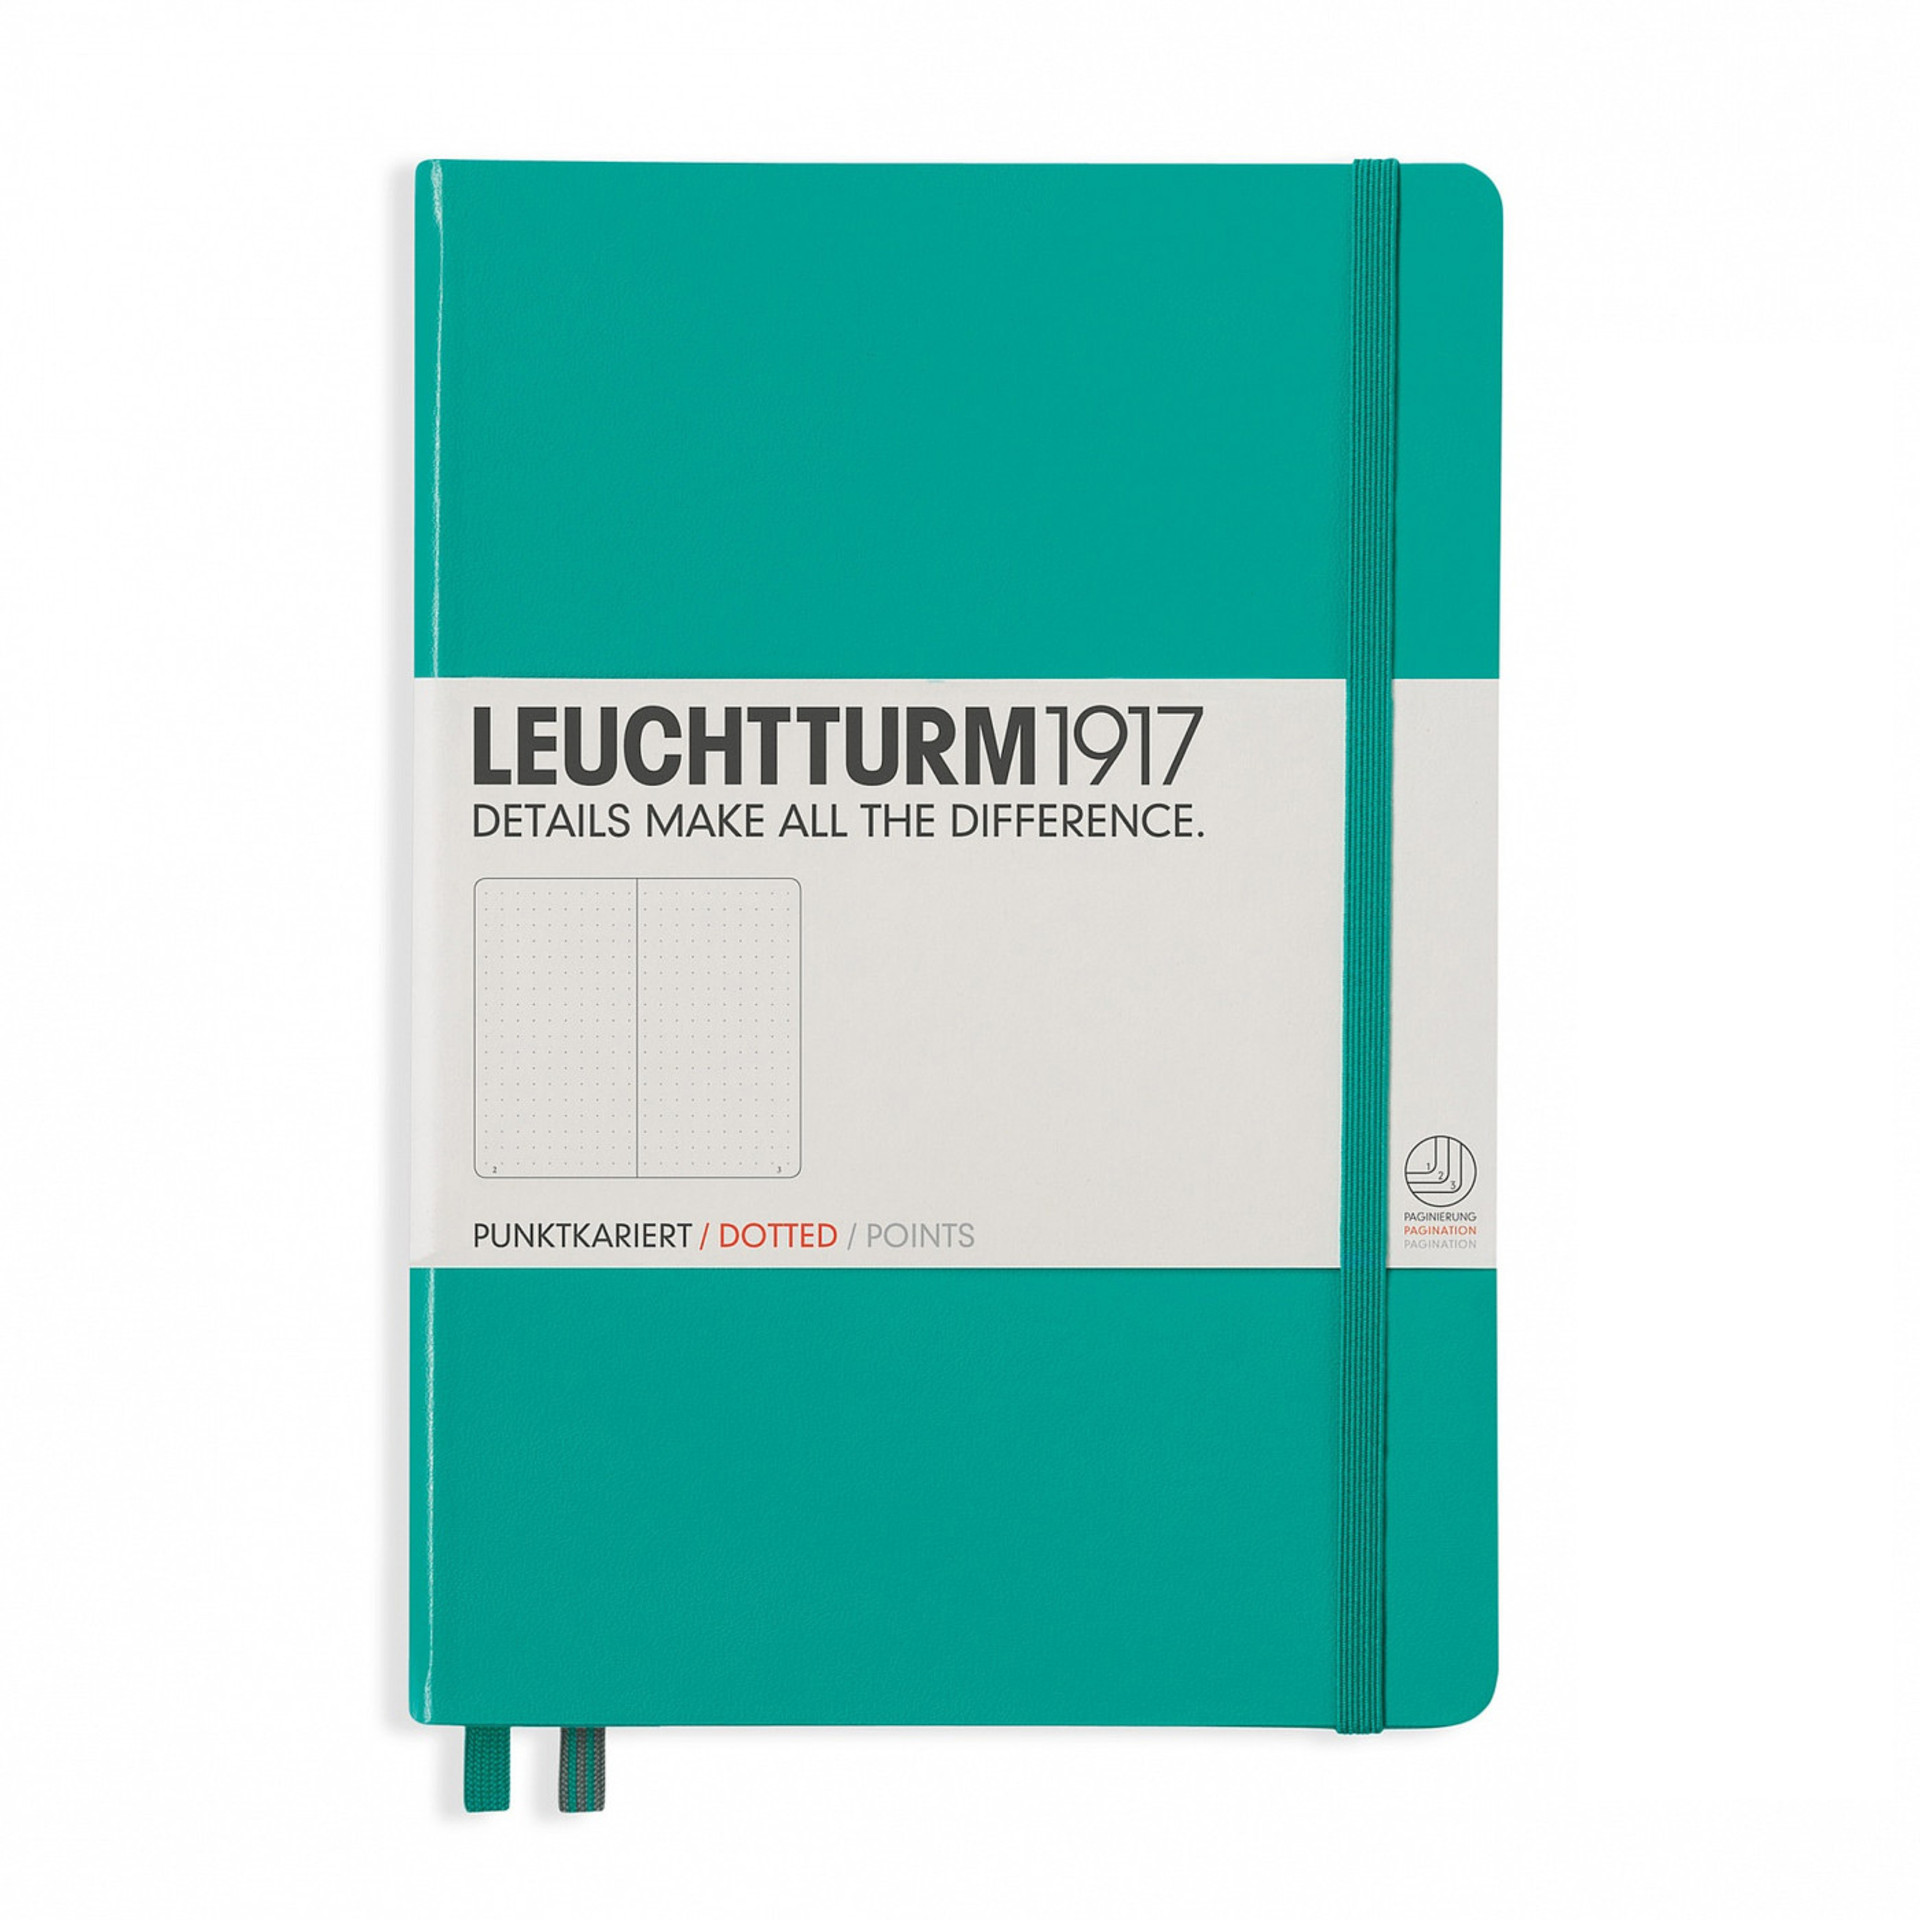 Leuchtturm 1917 A5 Medium Hardcover Notebook – Emerald – Dotted